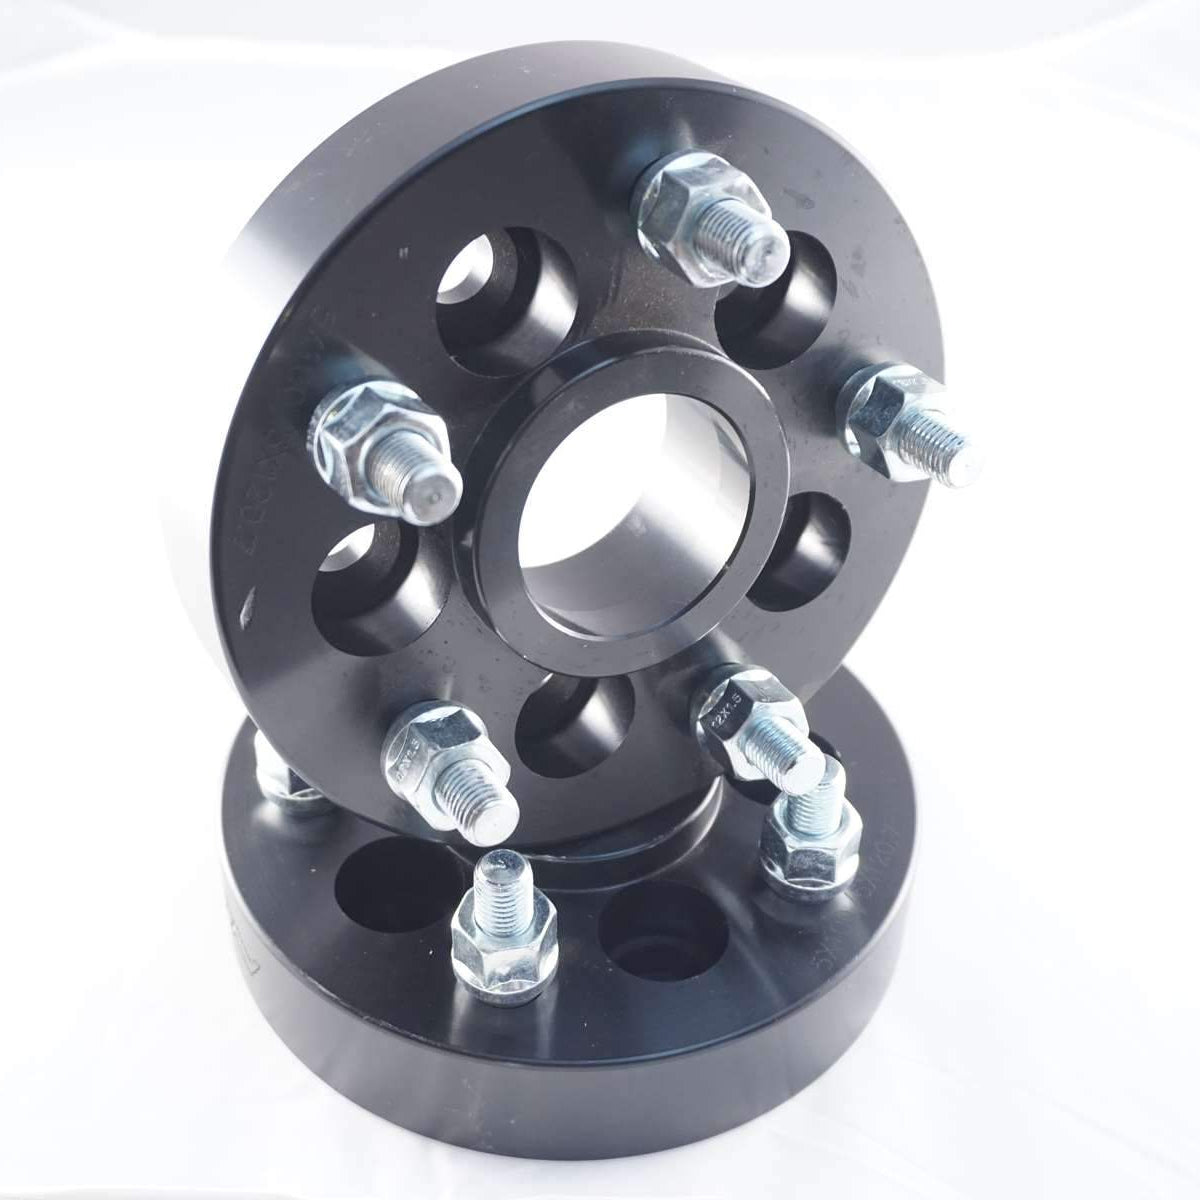 Wheel Adapters: 5x100 to 5x120.7 - 33mm